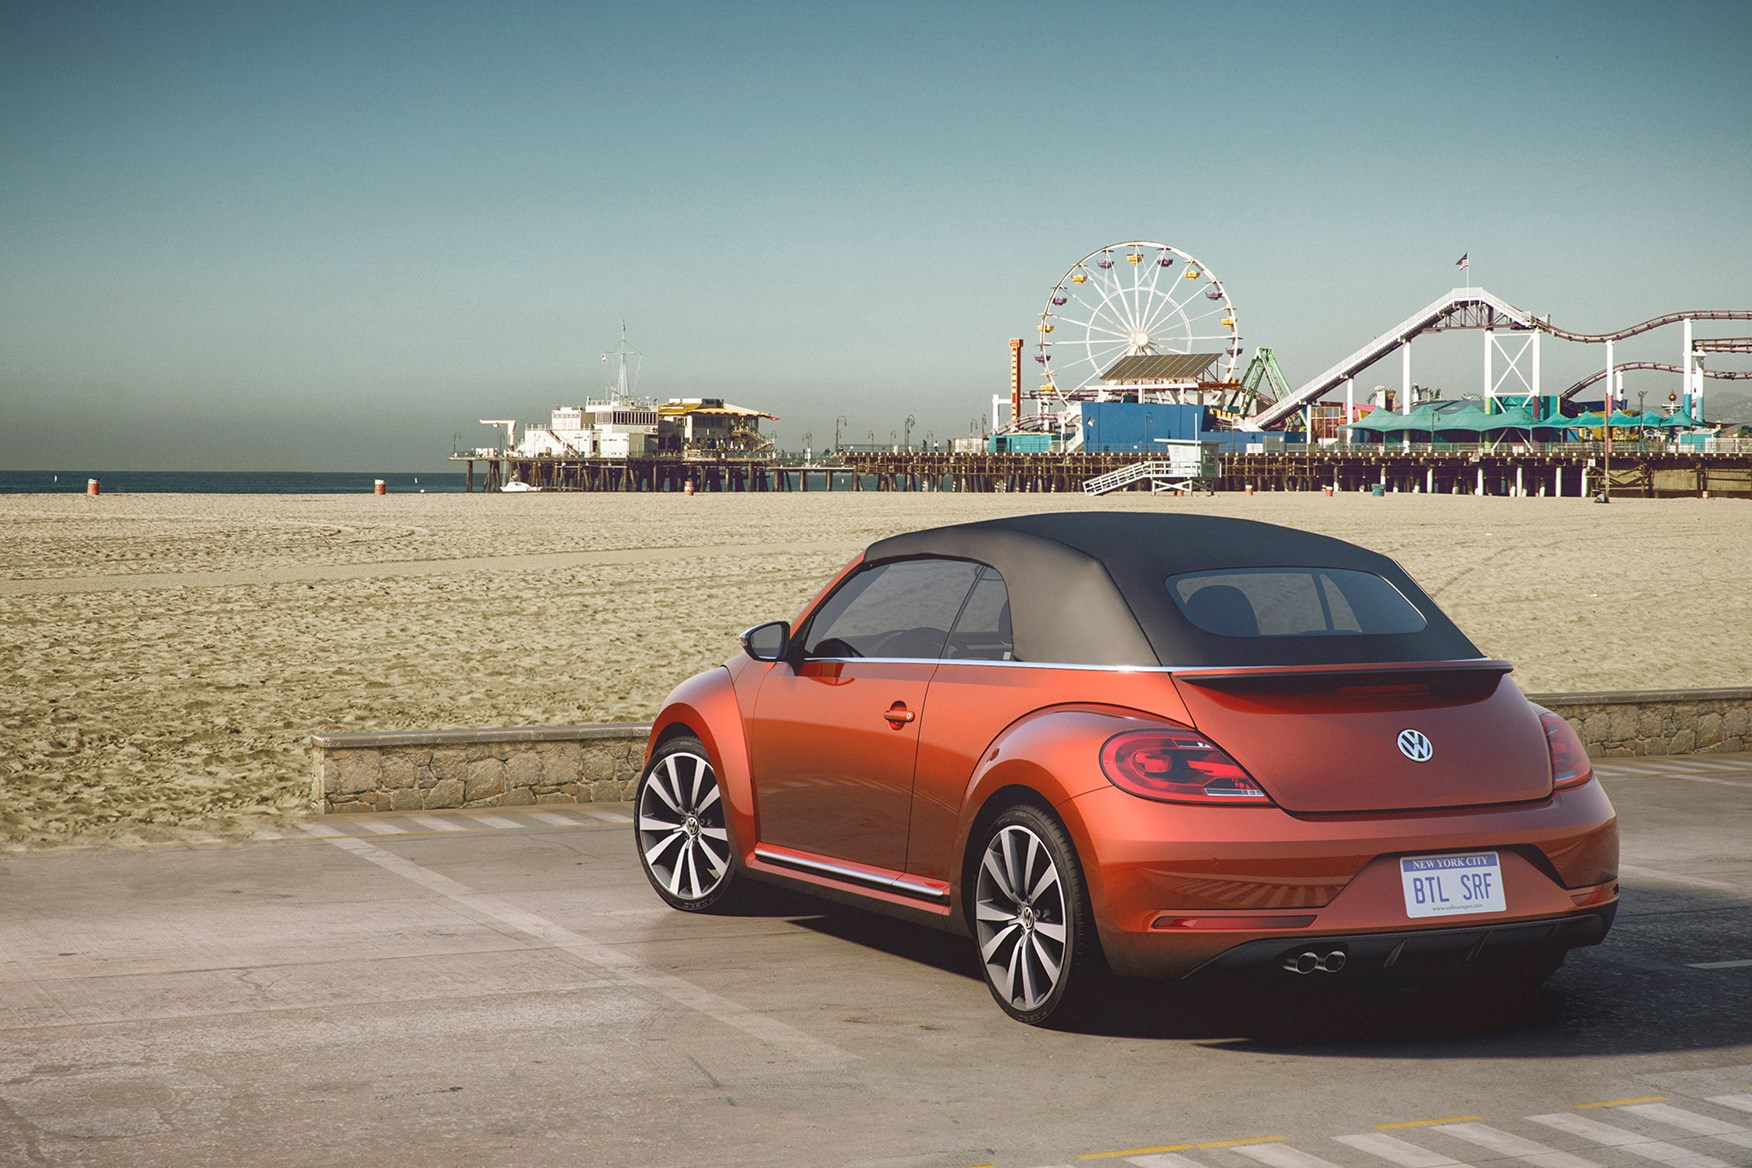 driving confident volkswagen that ve you man vw to pink a the drive be beetle car like got in gone